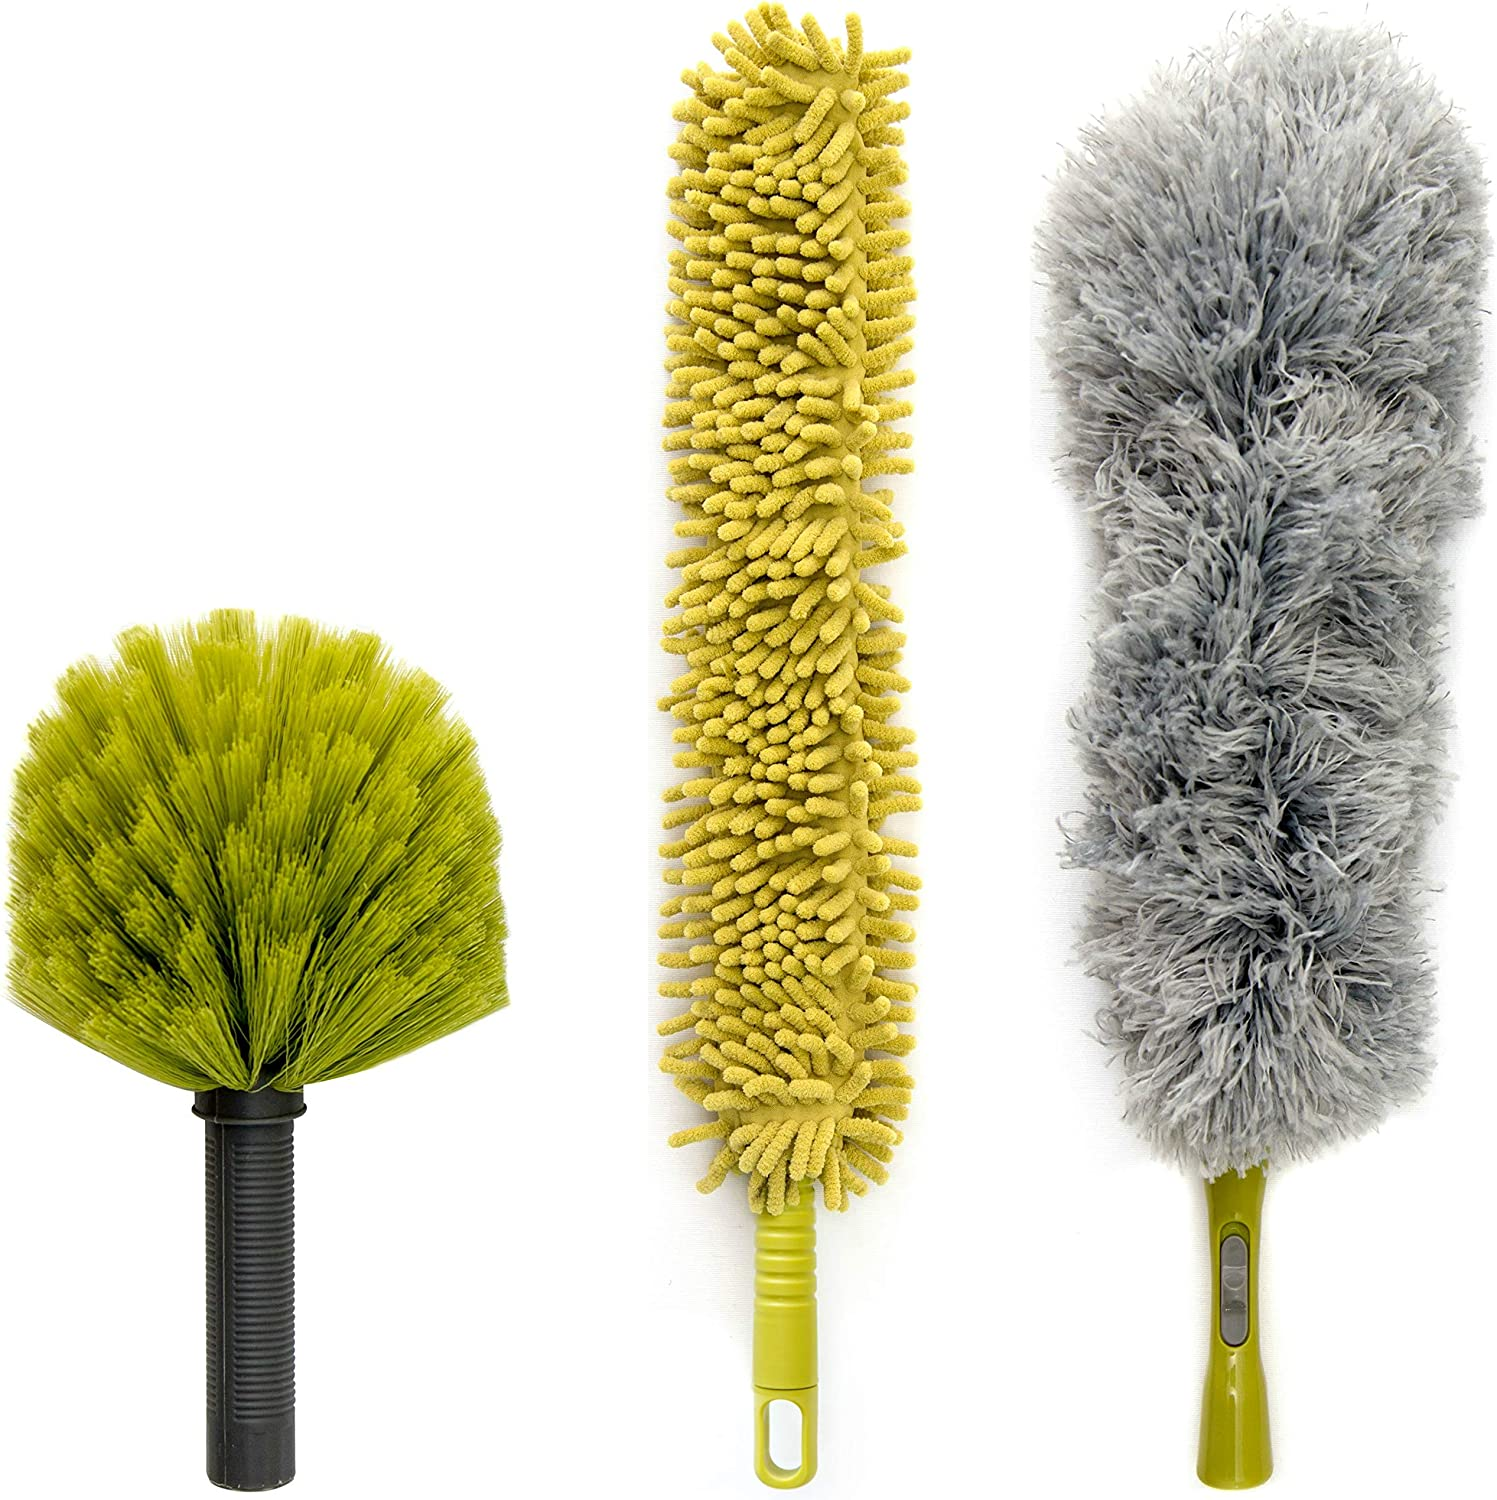 DocaPole Dusting Kit for Extension Pole or by Hand | Cleaning Kit Includes 3 Dusting Attachments | Cobweb Duster | Microfiber Feather Duster | Flexible Chenille Ceiling Fan Duster